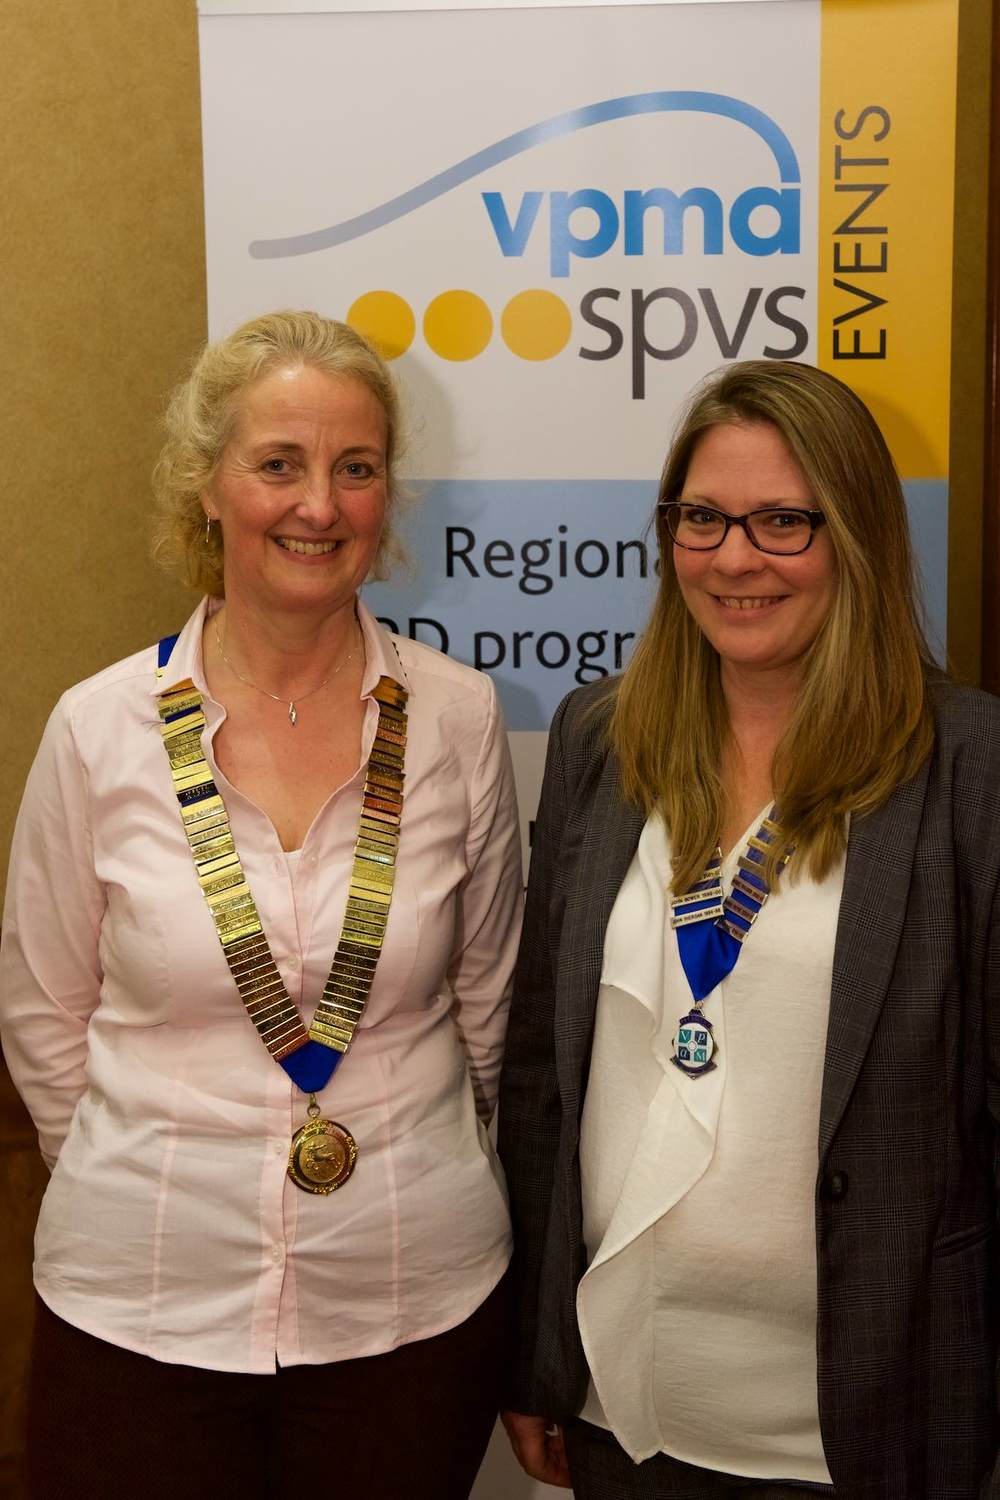 Another personal highlight was seeing our friend and long-time supporter Stephanie Writer-Davies becoming SPVS President.